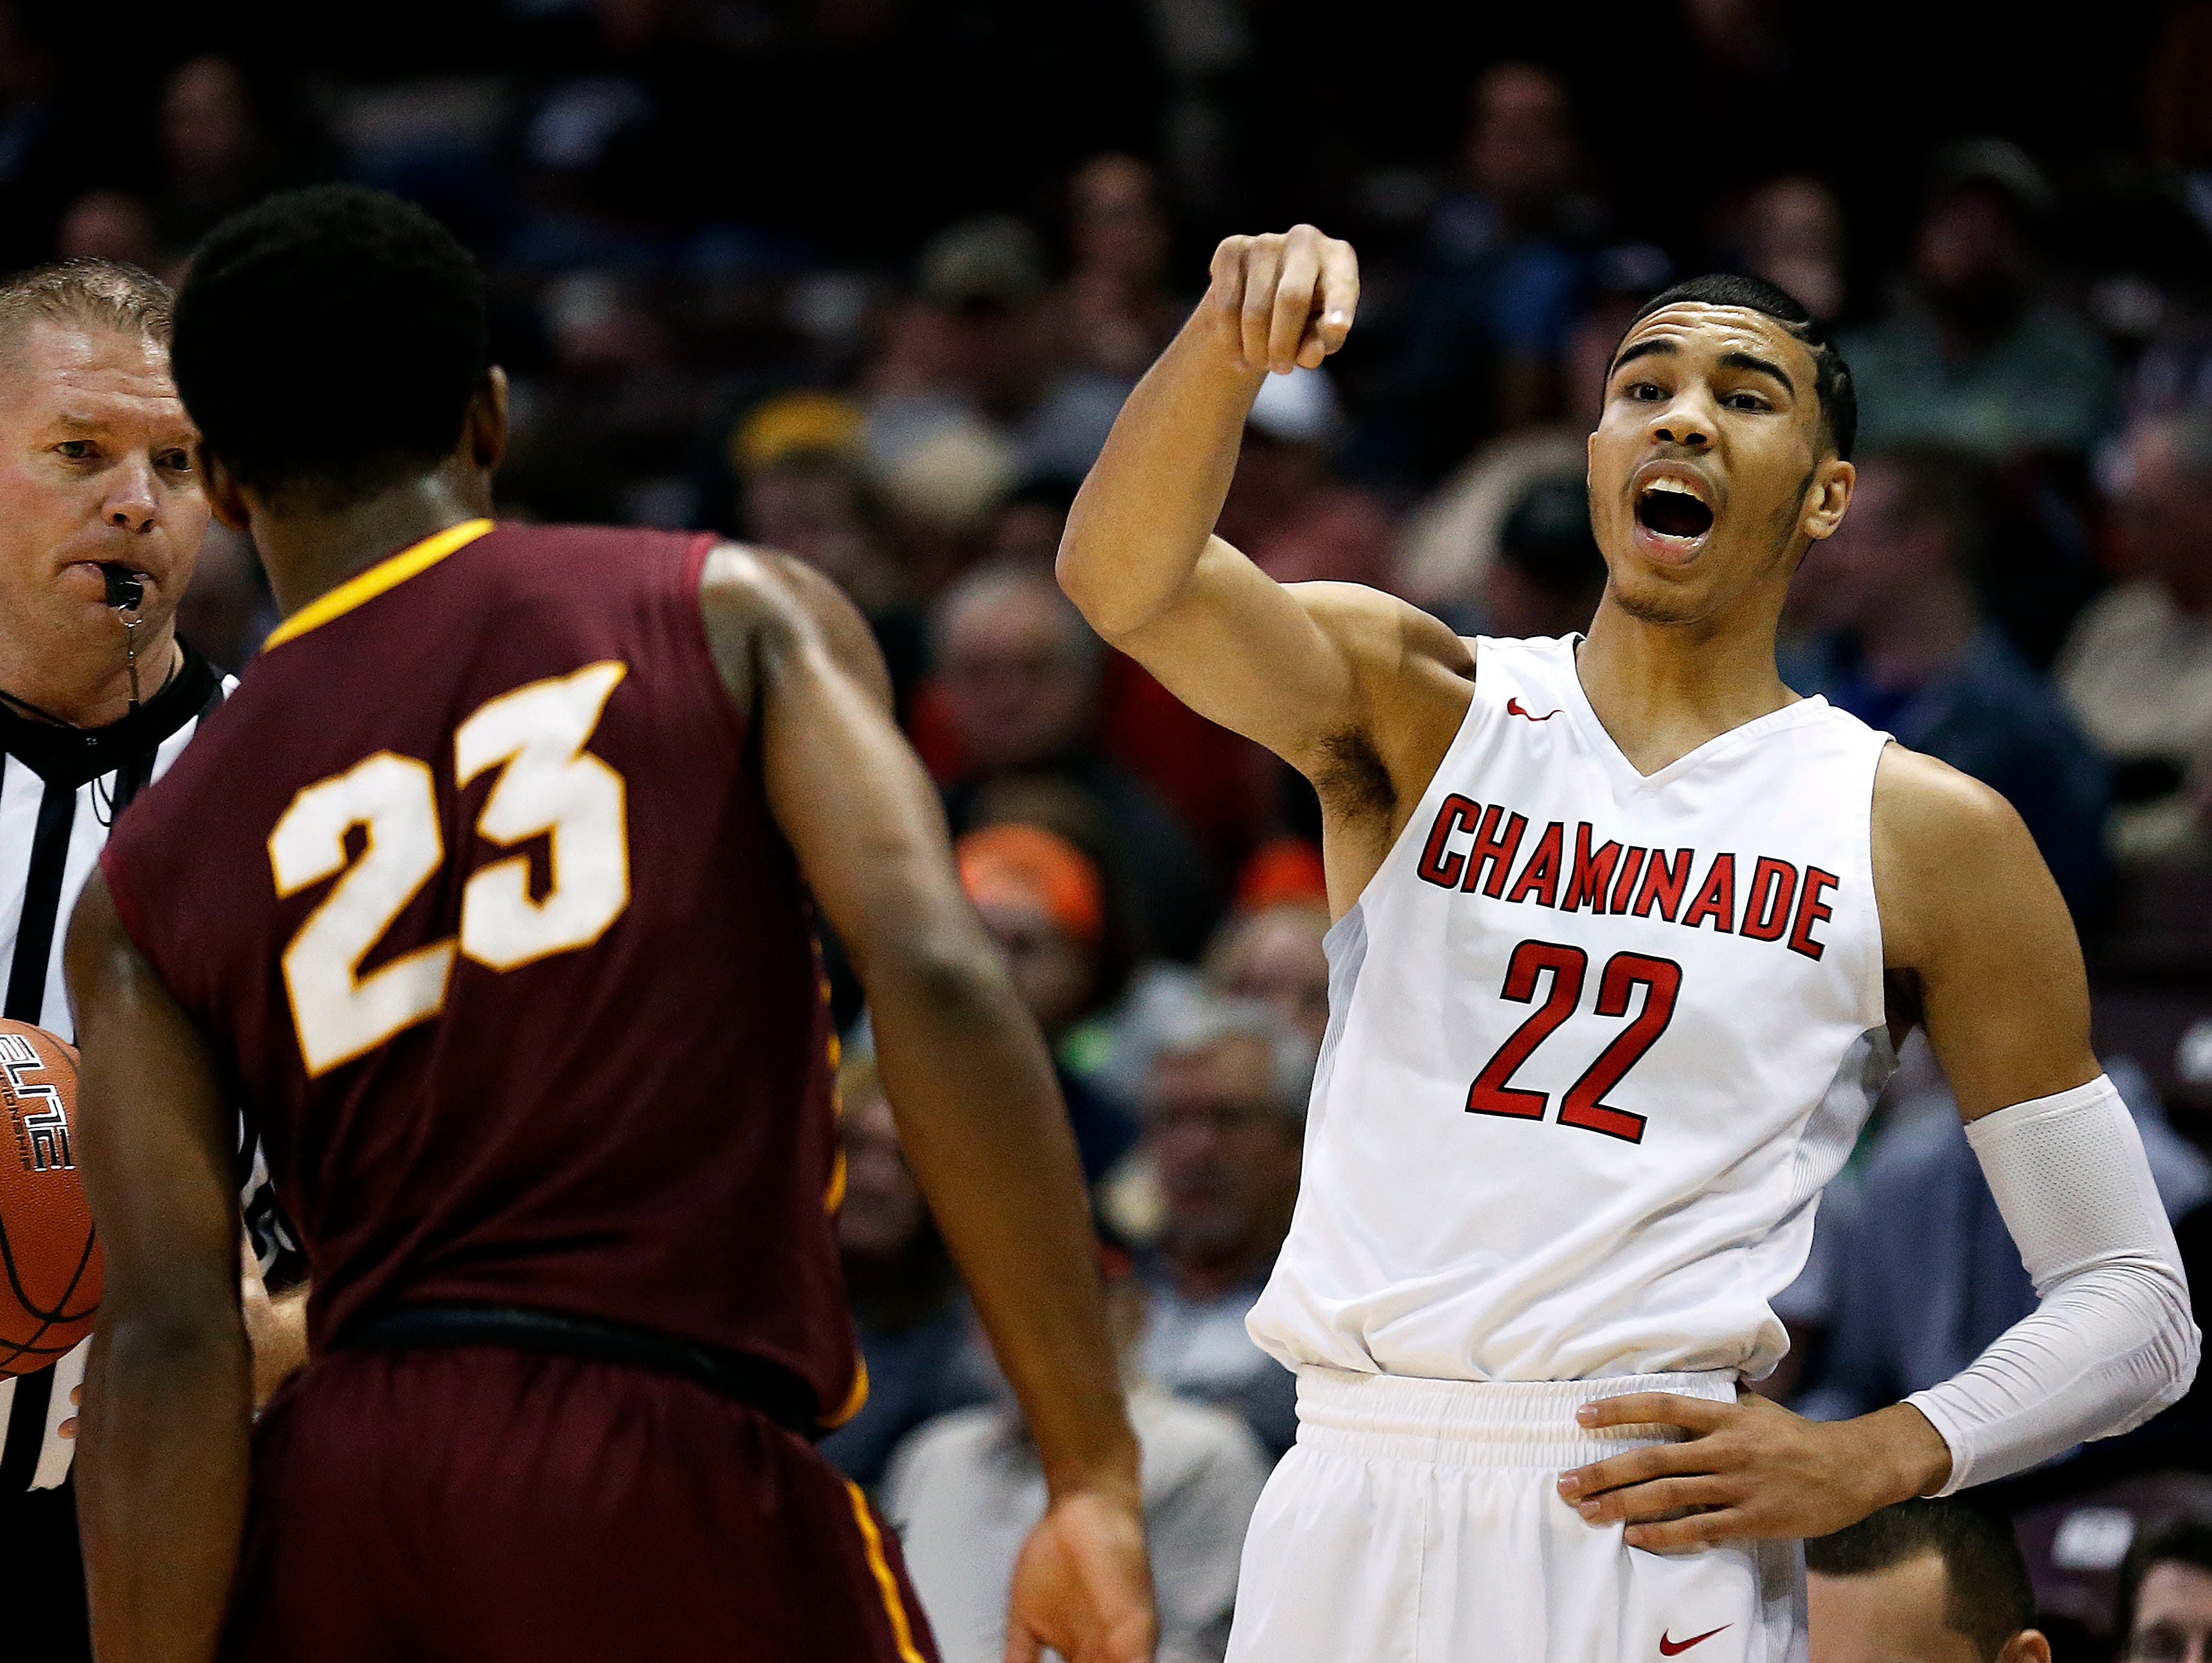 Chaminade College Preparatory School forward Jayson Tatum (22) yells out instructions to his teammates during first quarter action of the 2016 Tournament of Champions first round game between Chaminade College Preparatory School (St. Louis, Mo.) and Christ The King High School (Middle Village, N.Y.) at JQH Arena in Springfield, Mo. on Jan. 14, 2015. The Chaminade Red Devils won the game 67-48.